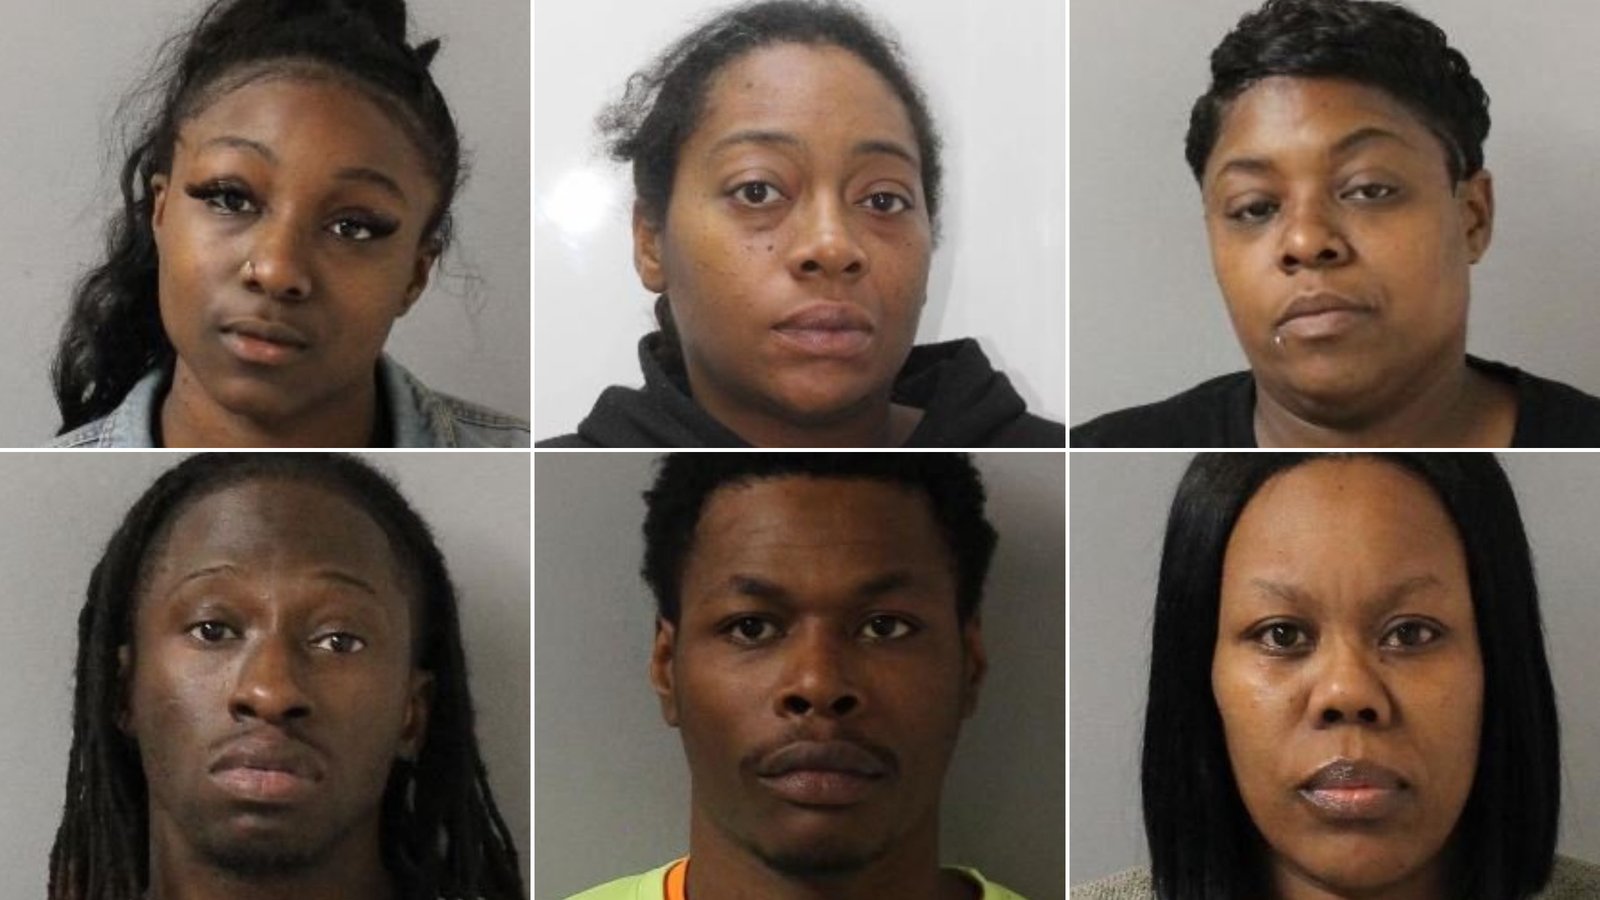 6 arrested for allegedly helping 2 juvenile inmates who escaped from Nashville detention center